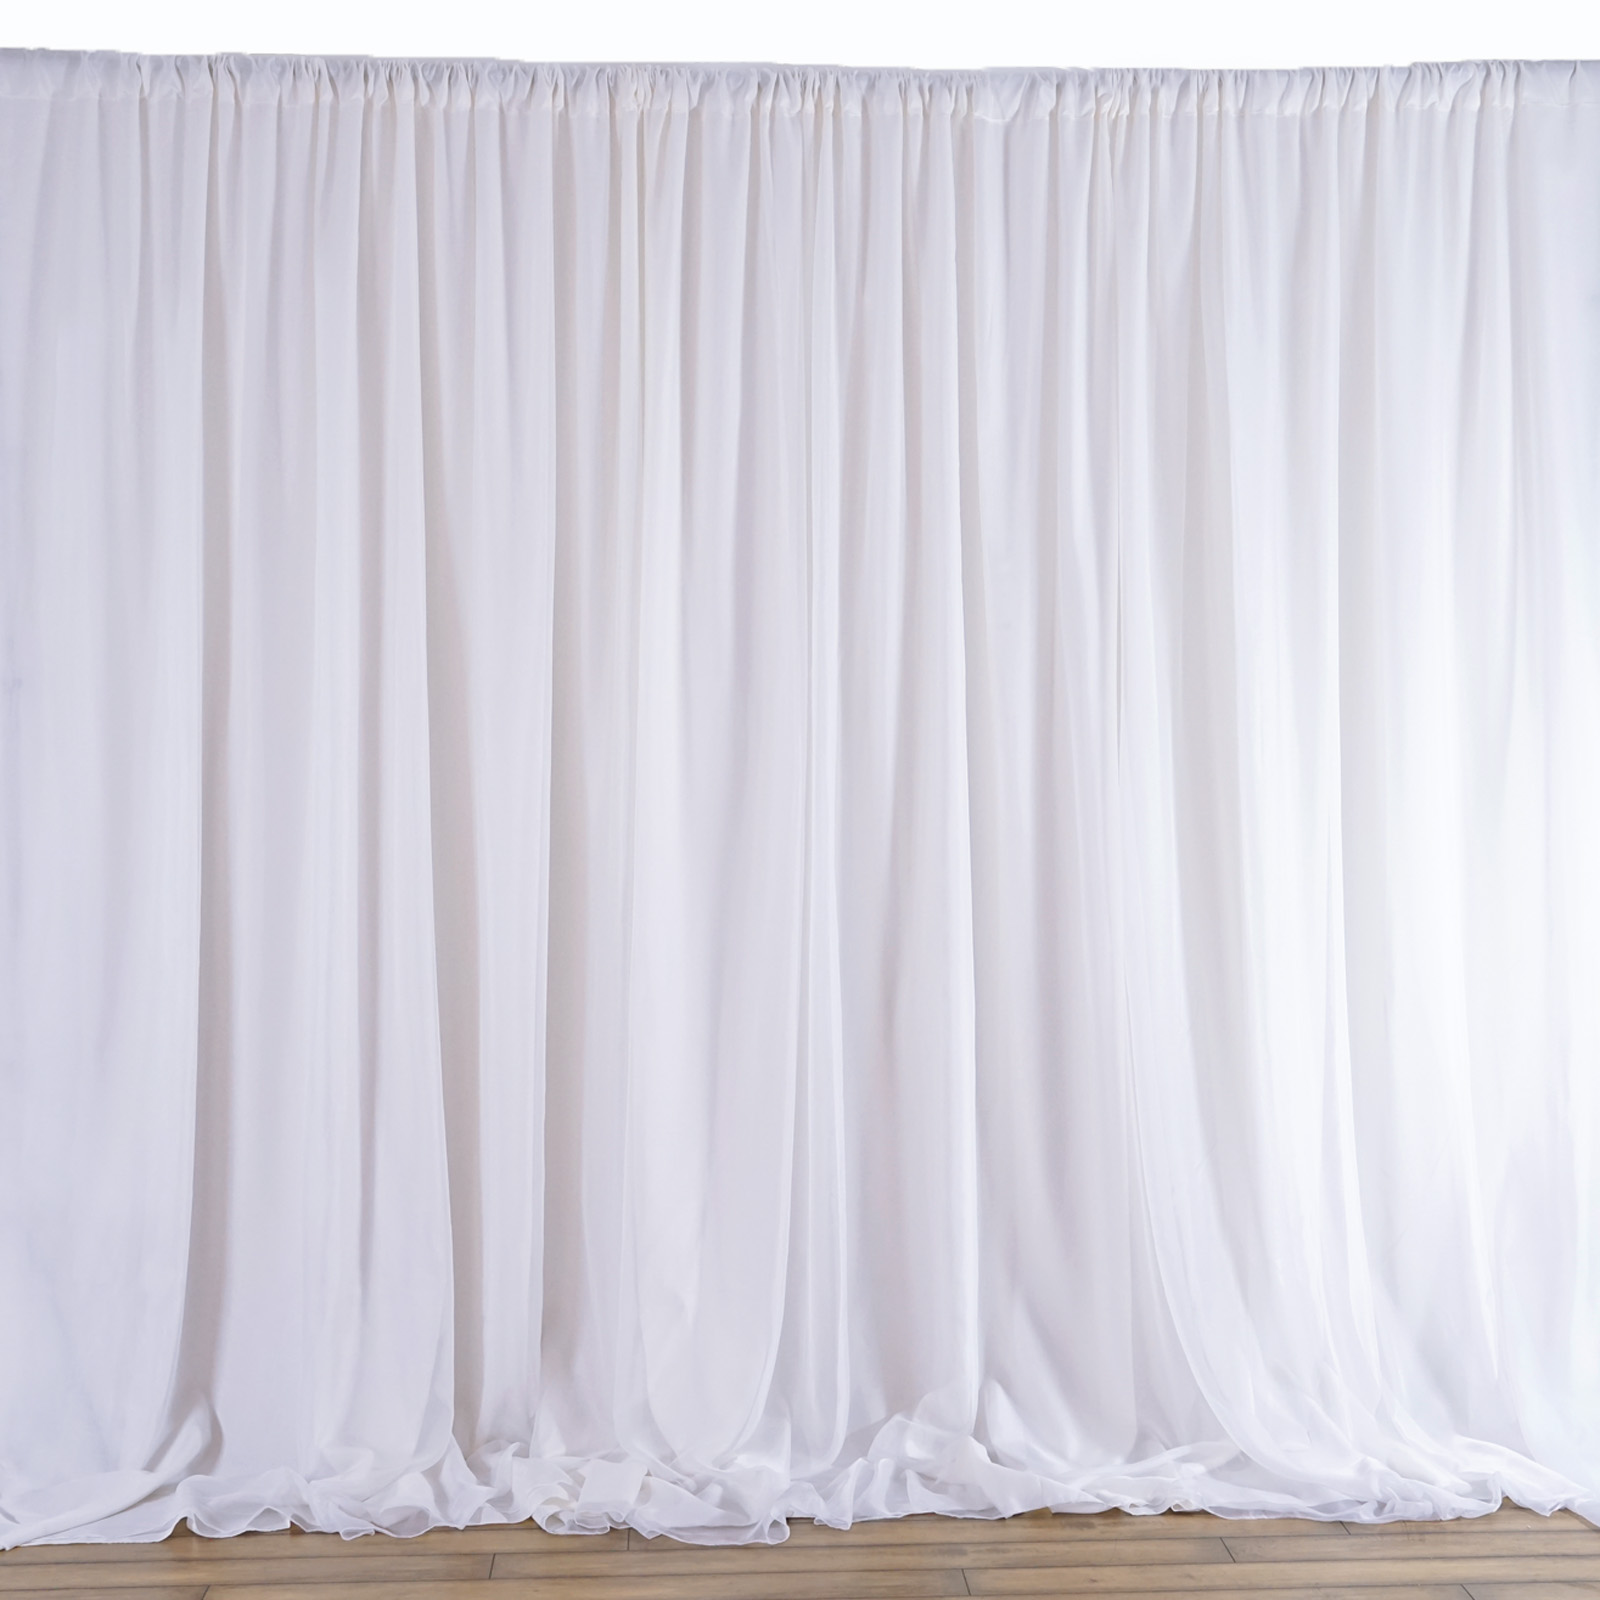 20 ft x 10 ft white fabric backdrop wedding party for Backdrop decoration